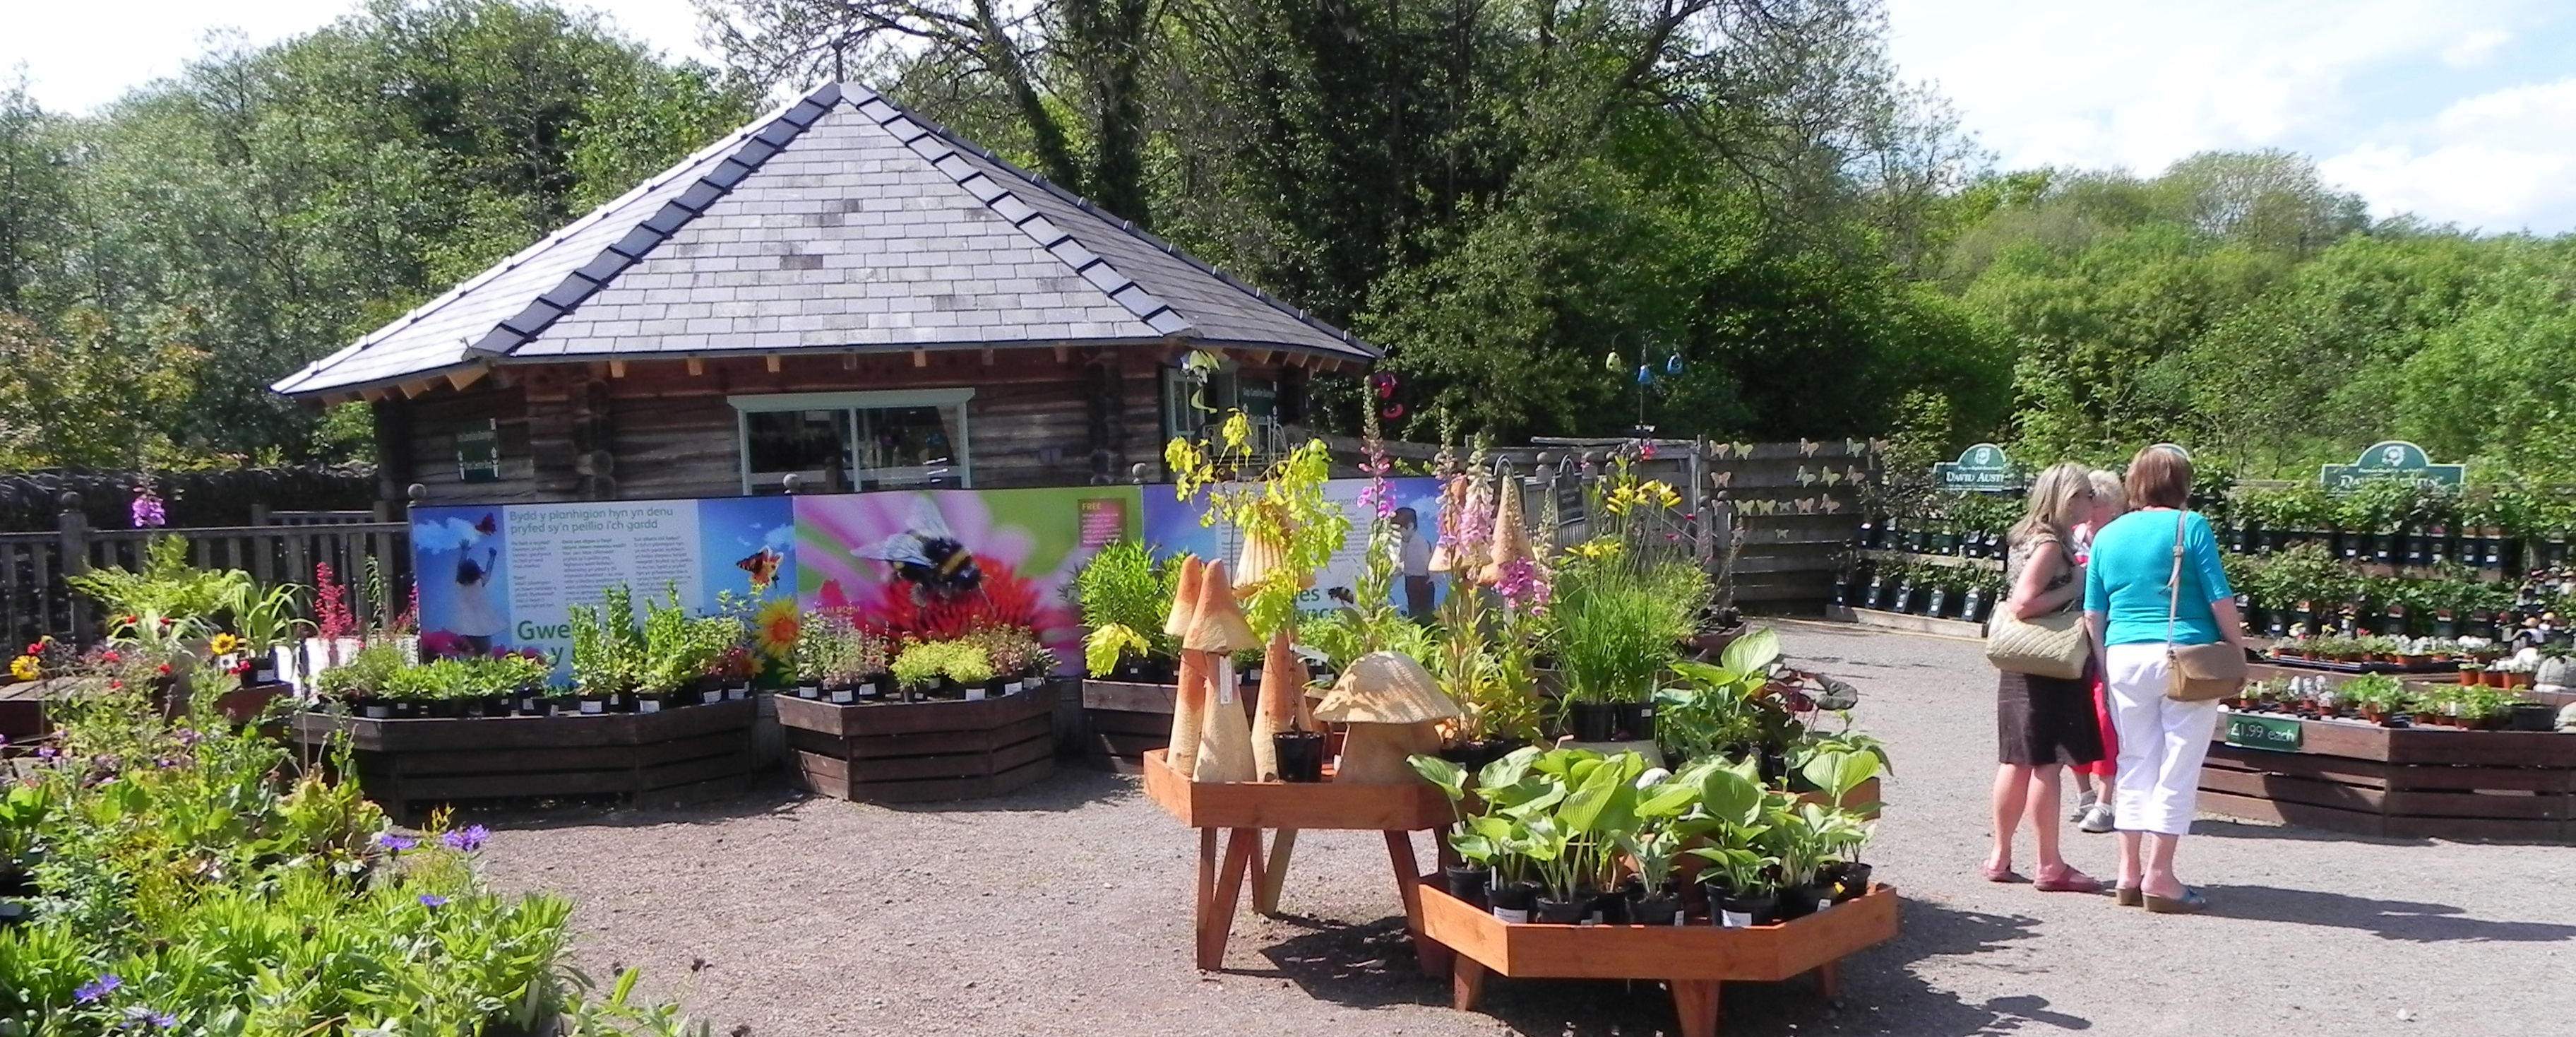 admissions and opening times national botanic garden of wales